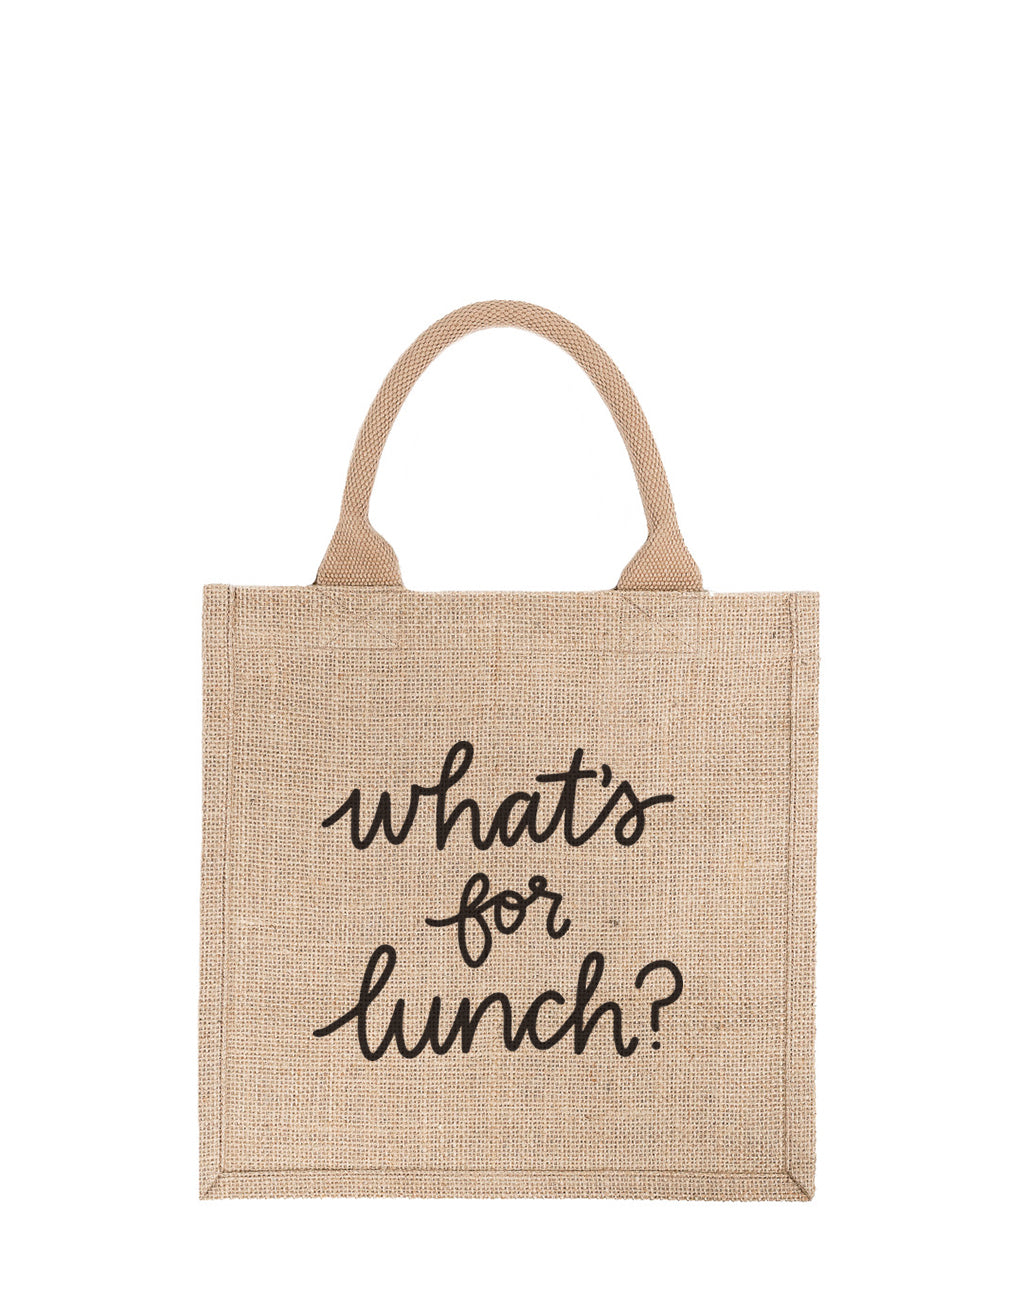 Large What's For Lunch Reusable Gift Tote In Black Font | The Little Market